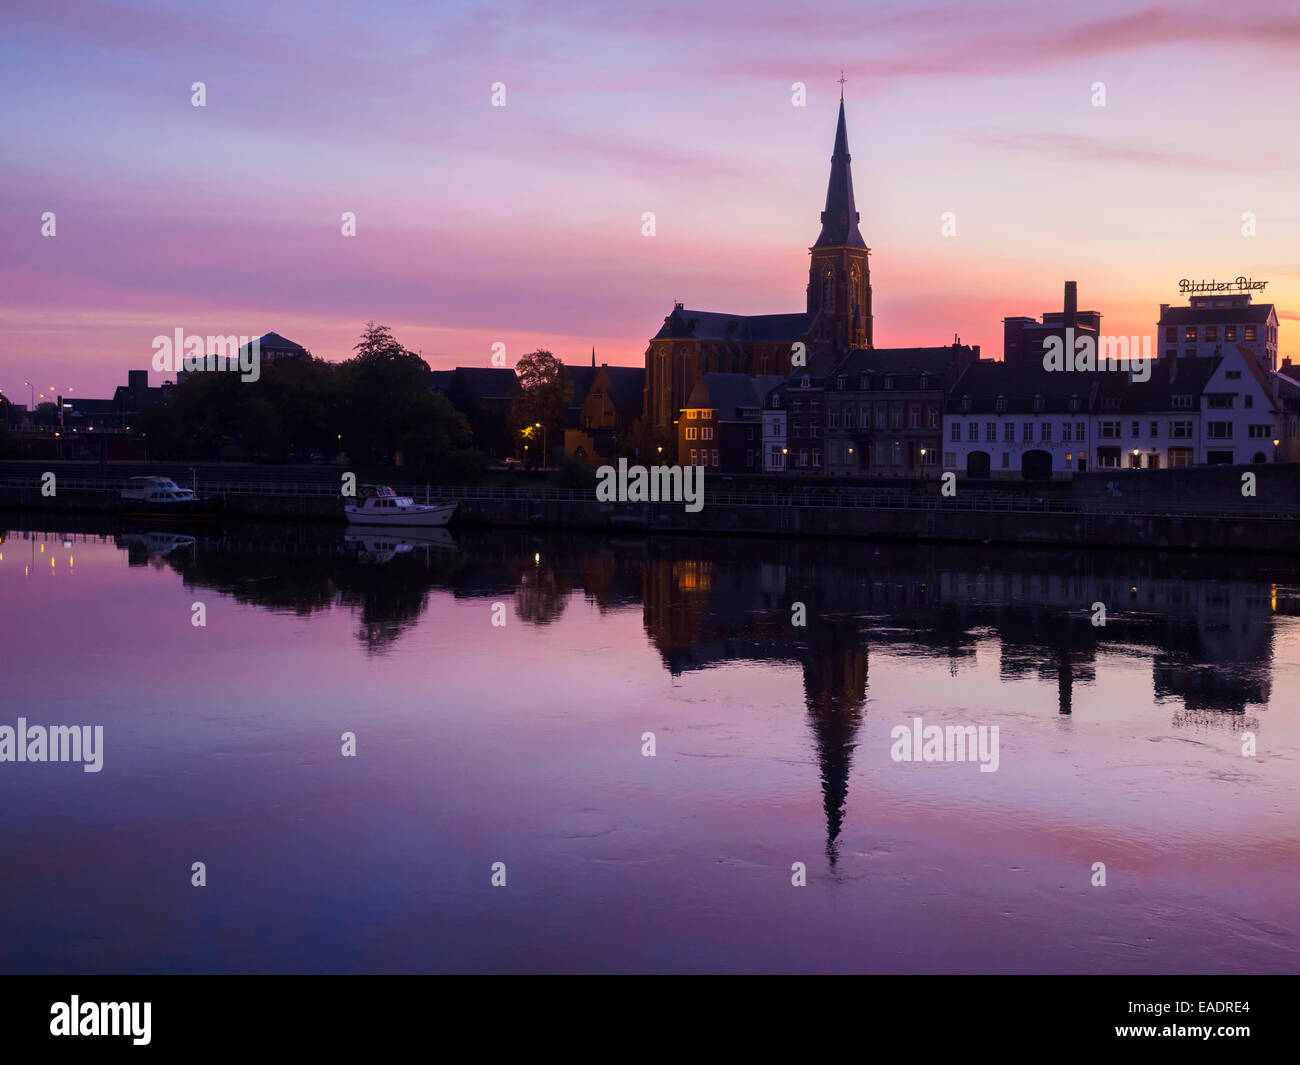 Silhouette of the St. Martinus church tower in Maastricht, The Netherlands, Europe - Stock Image